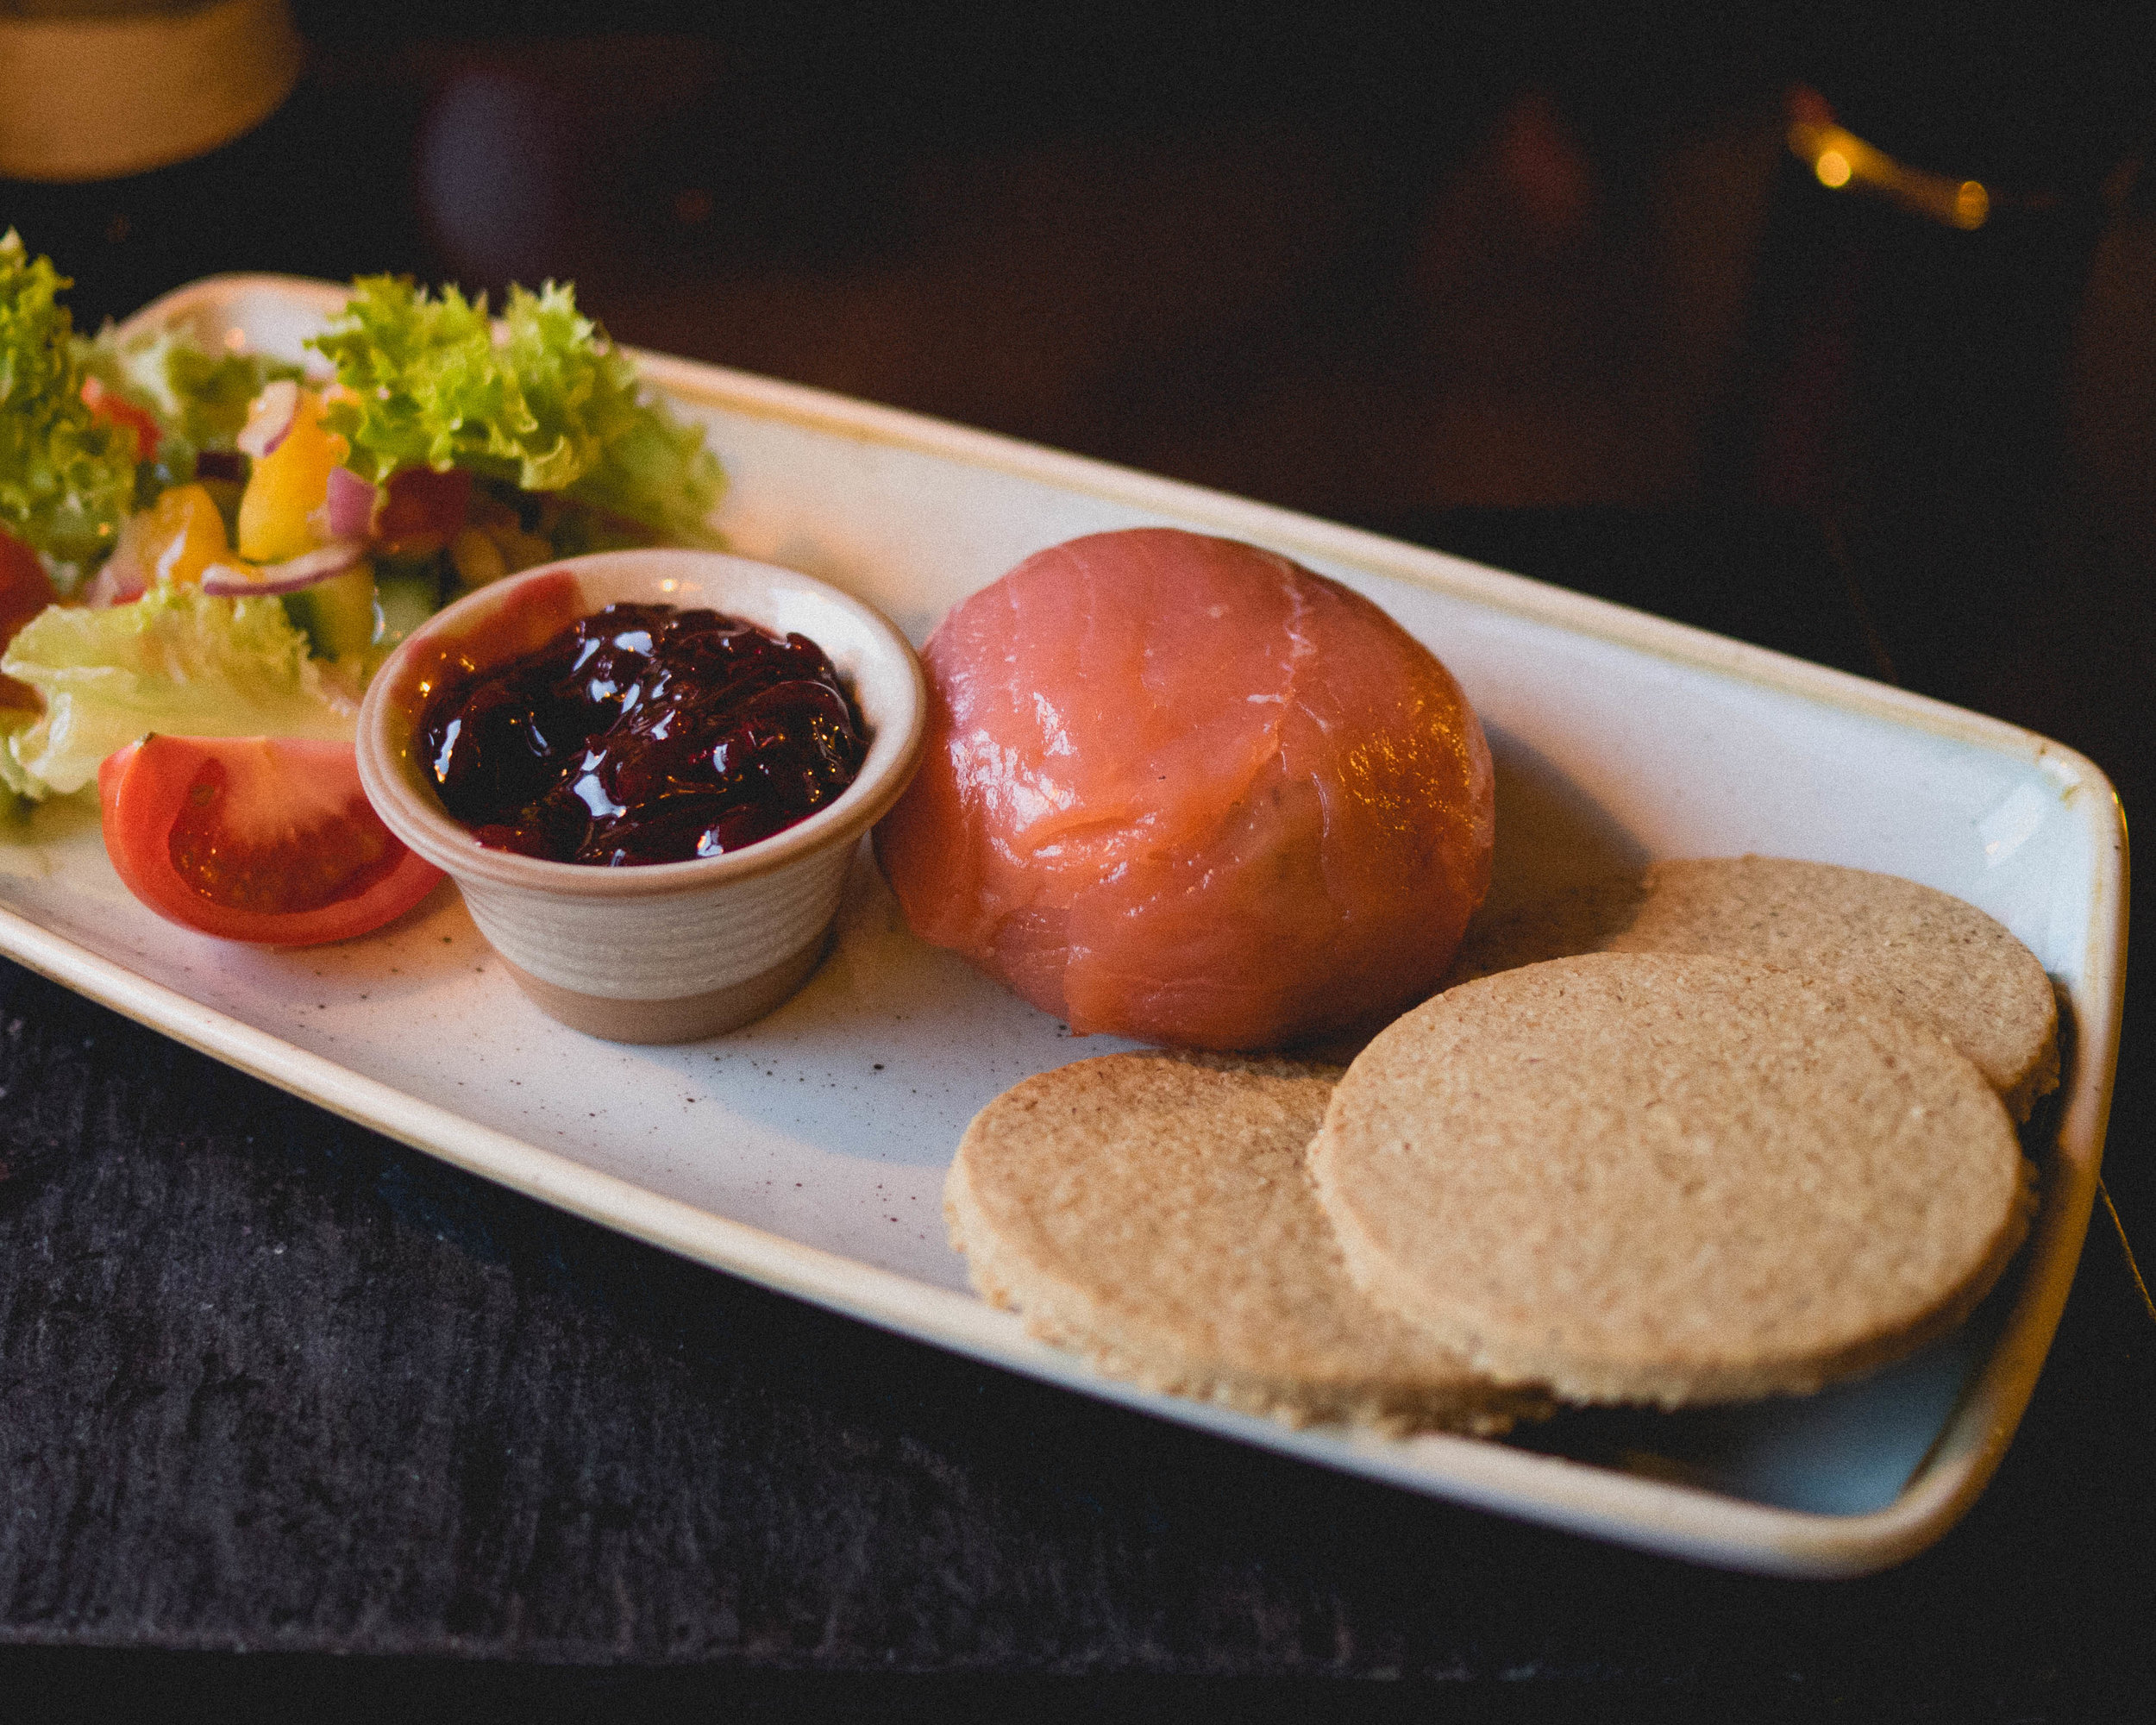 hebridean seafood parcel : smoked mackerel pate wrapped in cold smoked salmon, with beetroot and horseradish chutney.